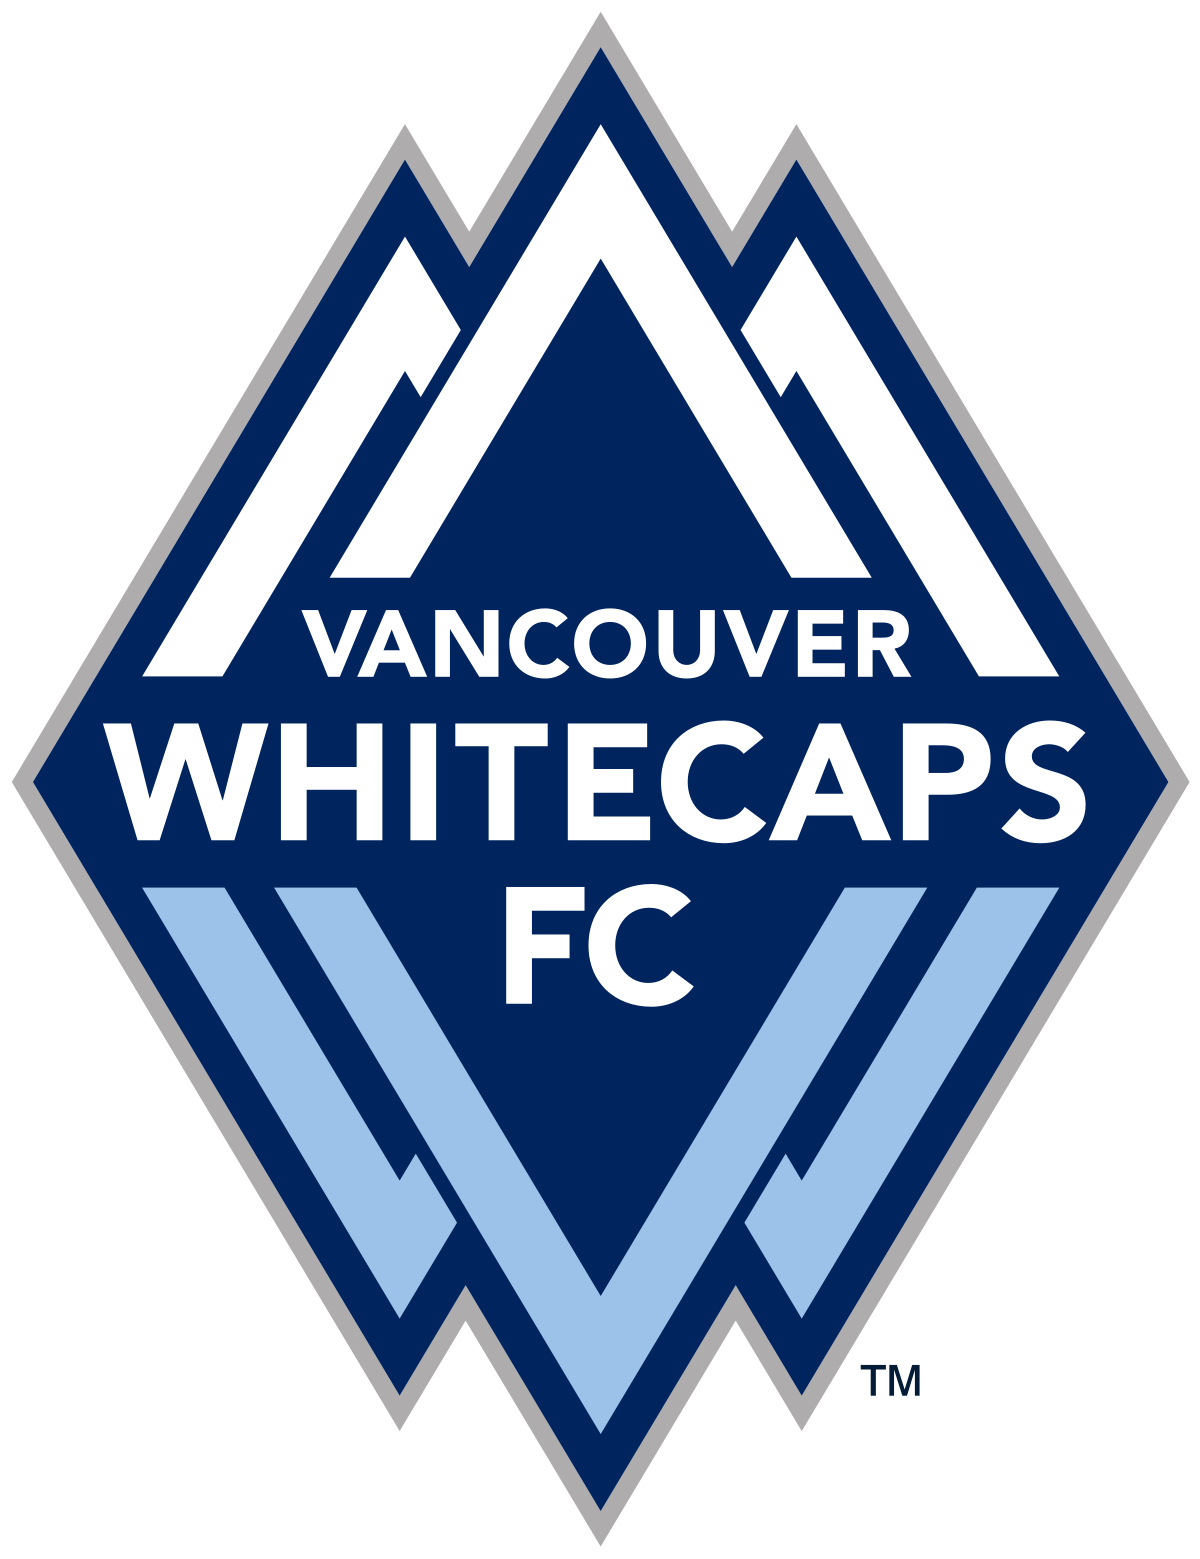 Vancouver Whitecaps Fc PNG